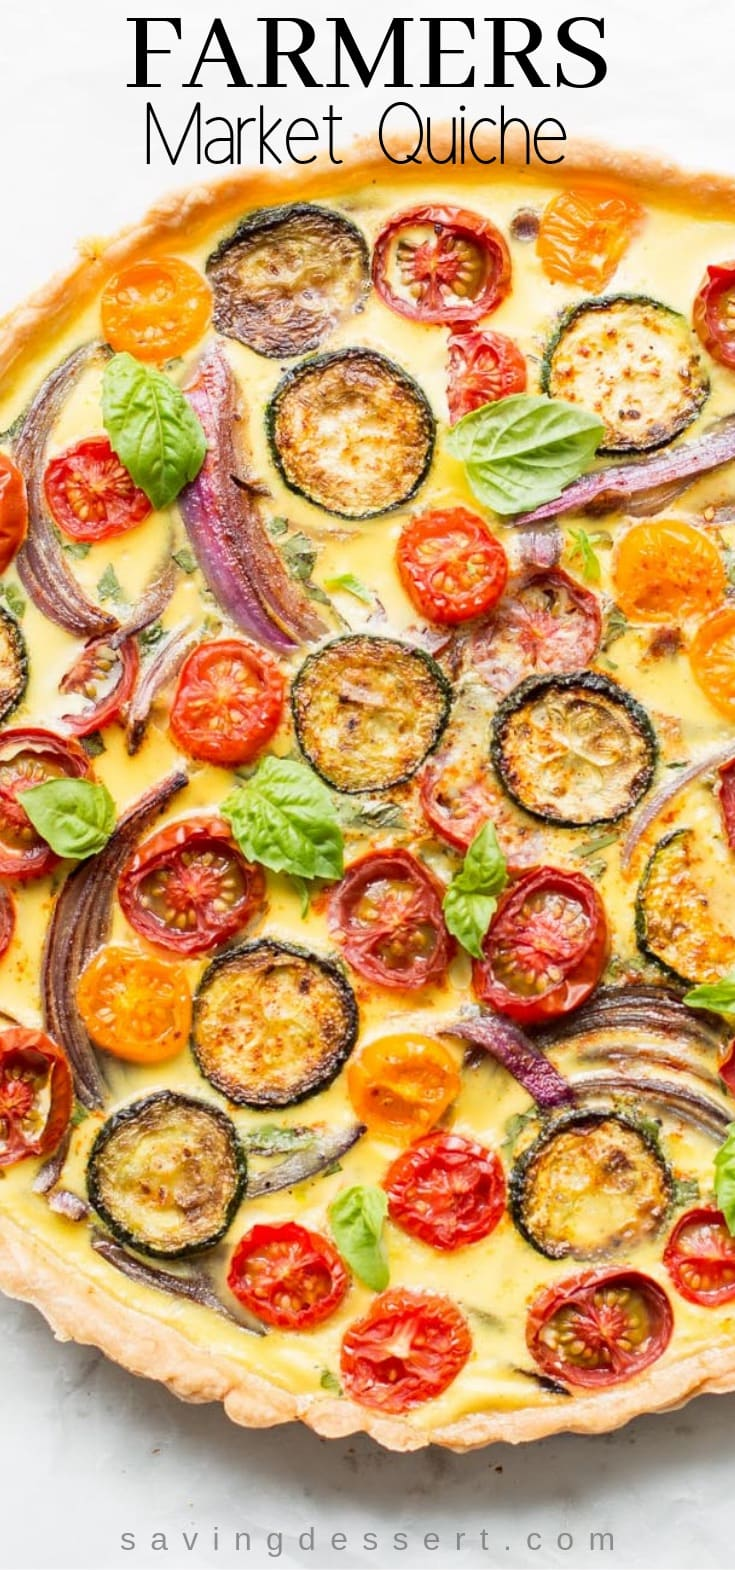 Farmers' Market Quiche - A tasty, fresh vegetable quiche filled with zucchini, onions, tomatoes and cheese. #quiche #vegetablequiche #breakfast #brunch #piepastry #farmersmarketquiche